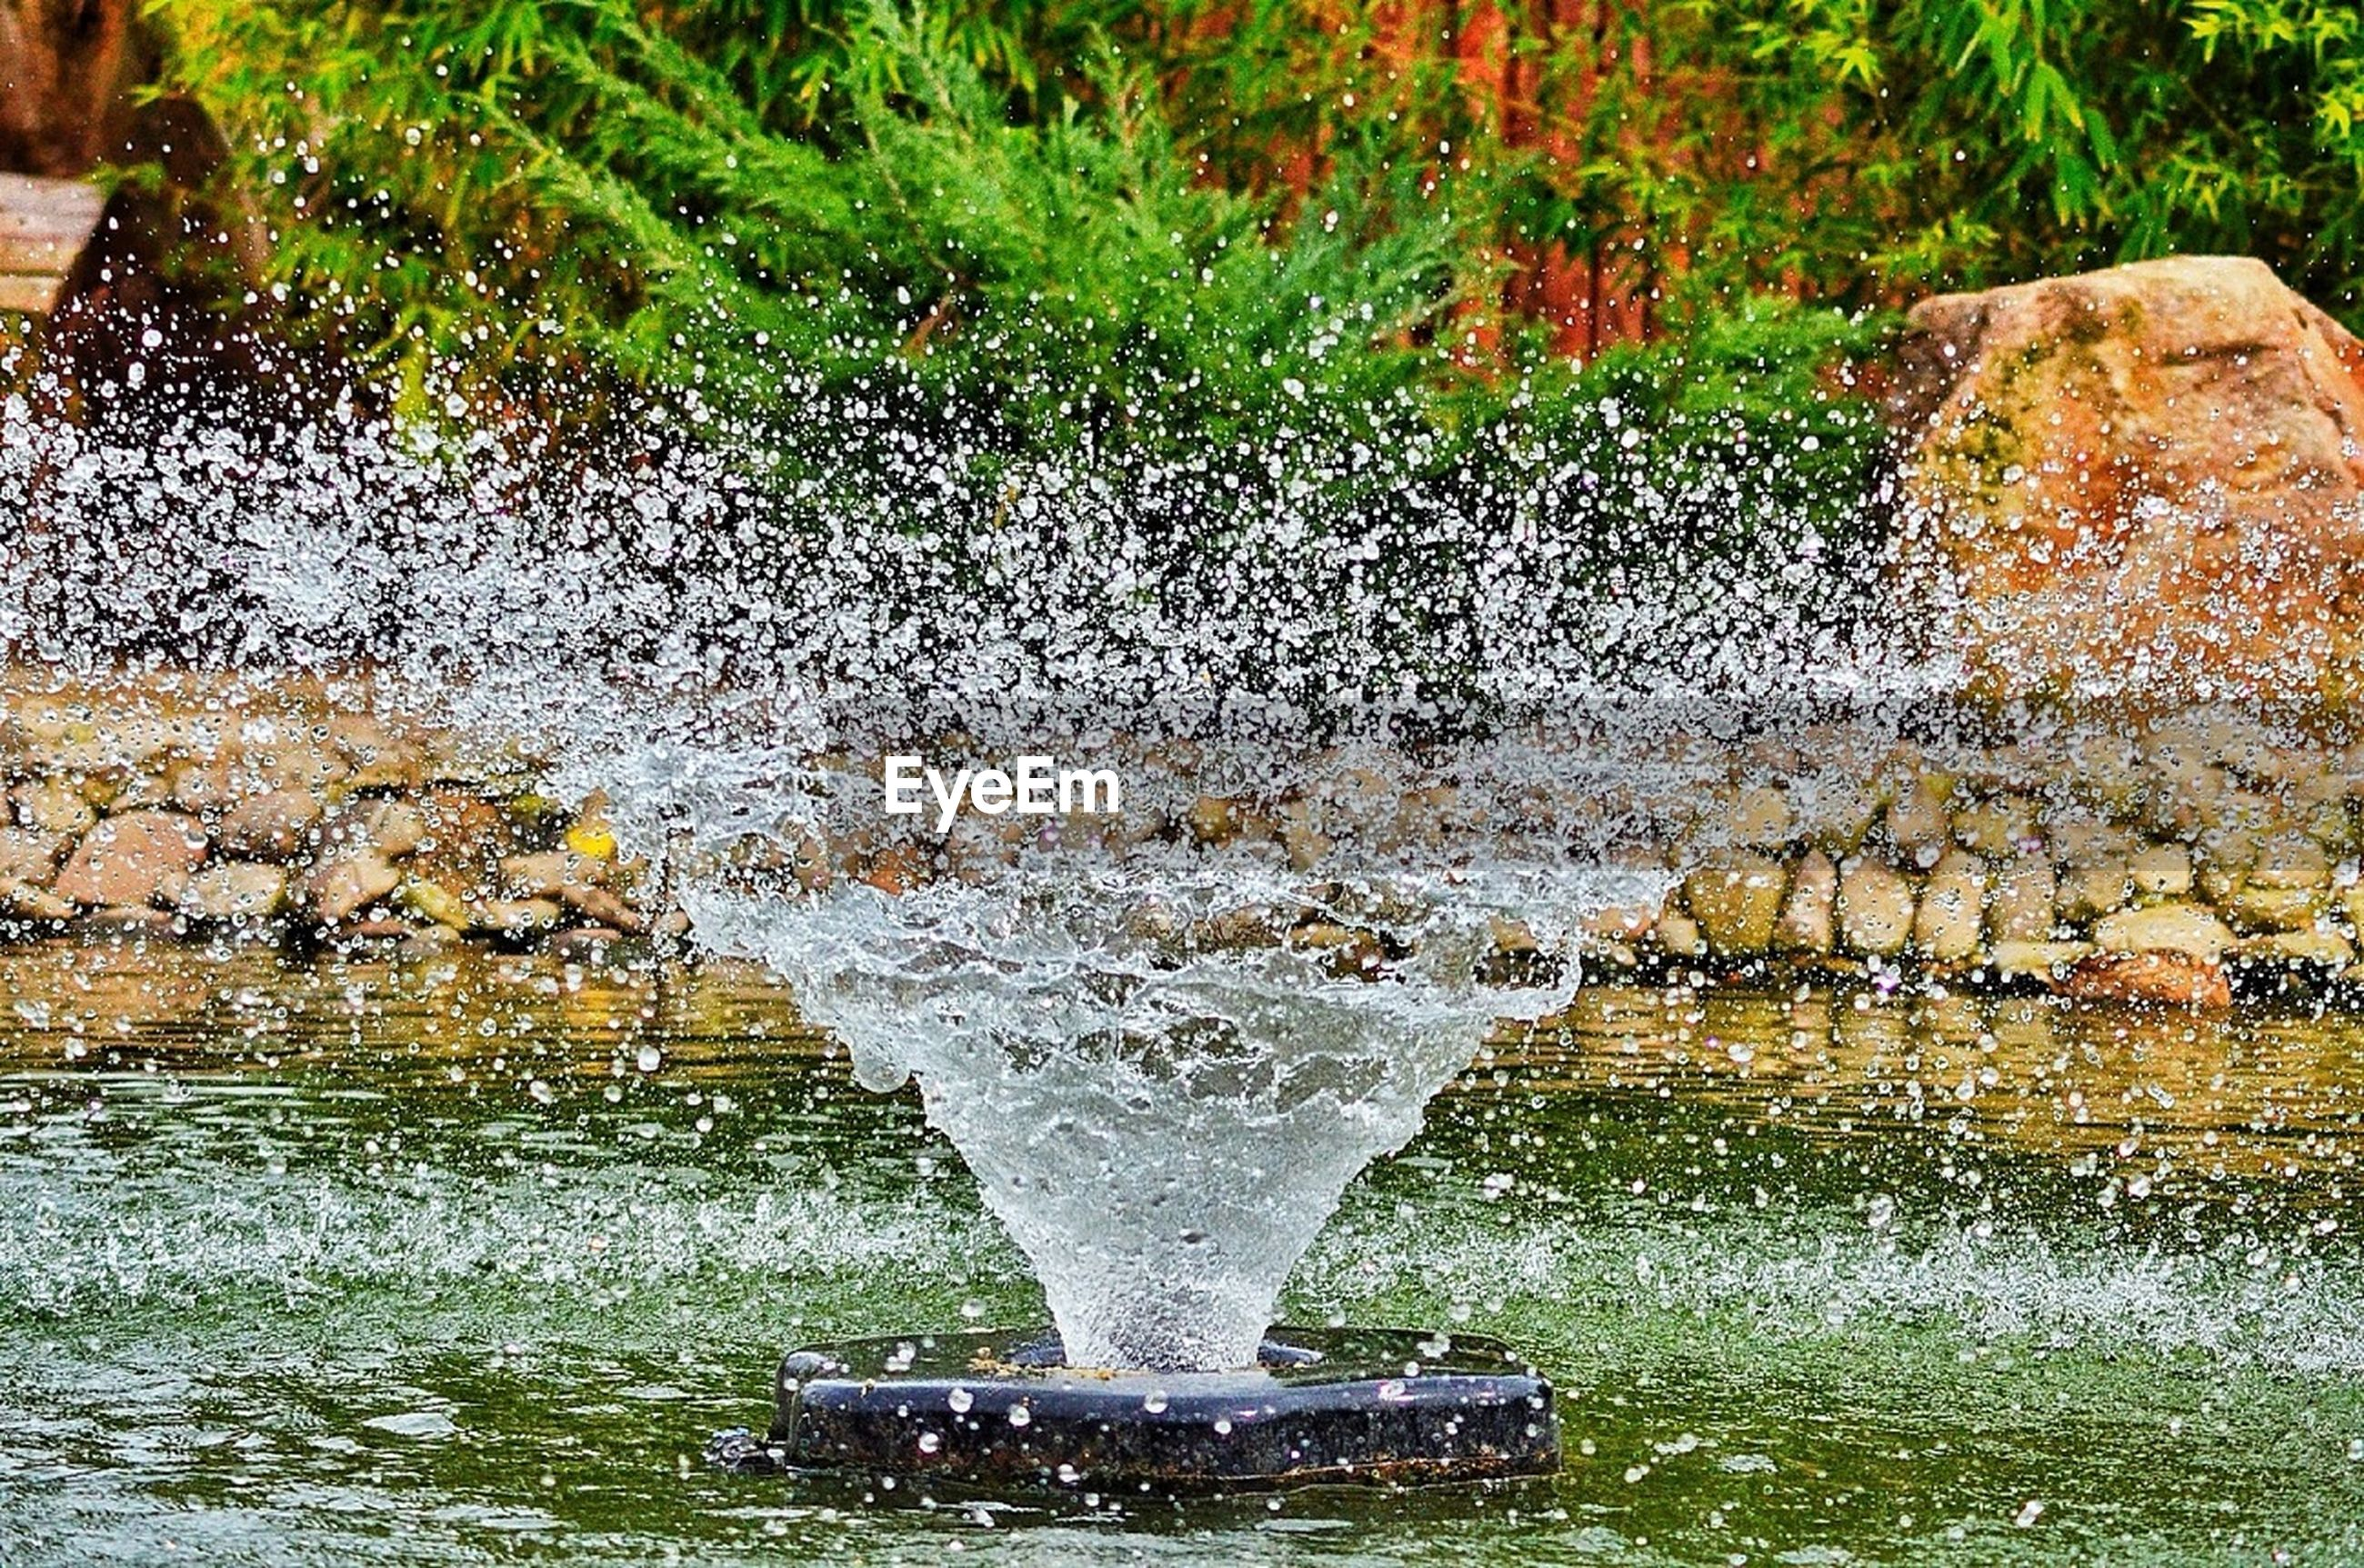 water, motion, splashing, fountain, rock - object, flowing, flowing water, waterfront, wet, nature, day, outdoors, long exposure, waterfall, plant, reflection, stone - object, park - man made space, stone material, falling